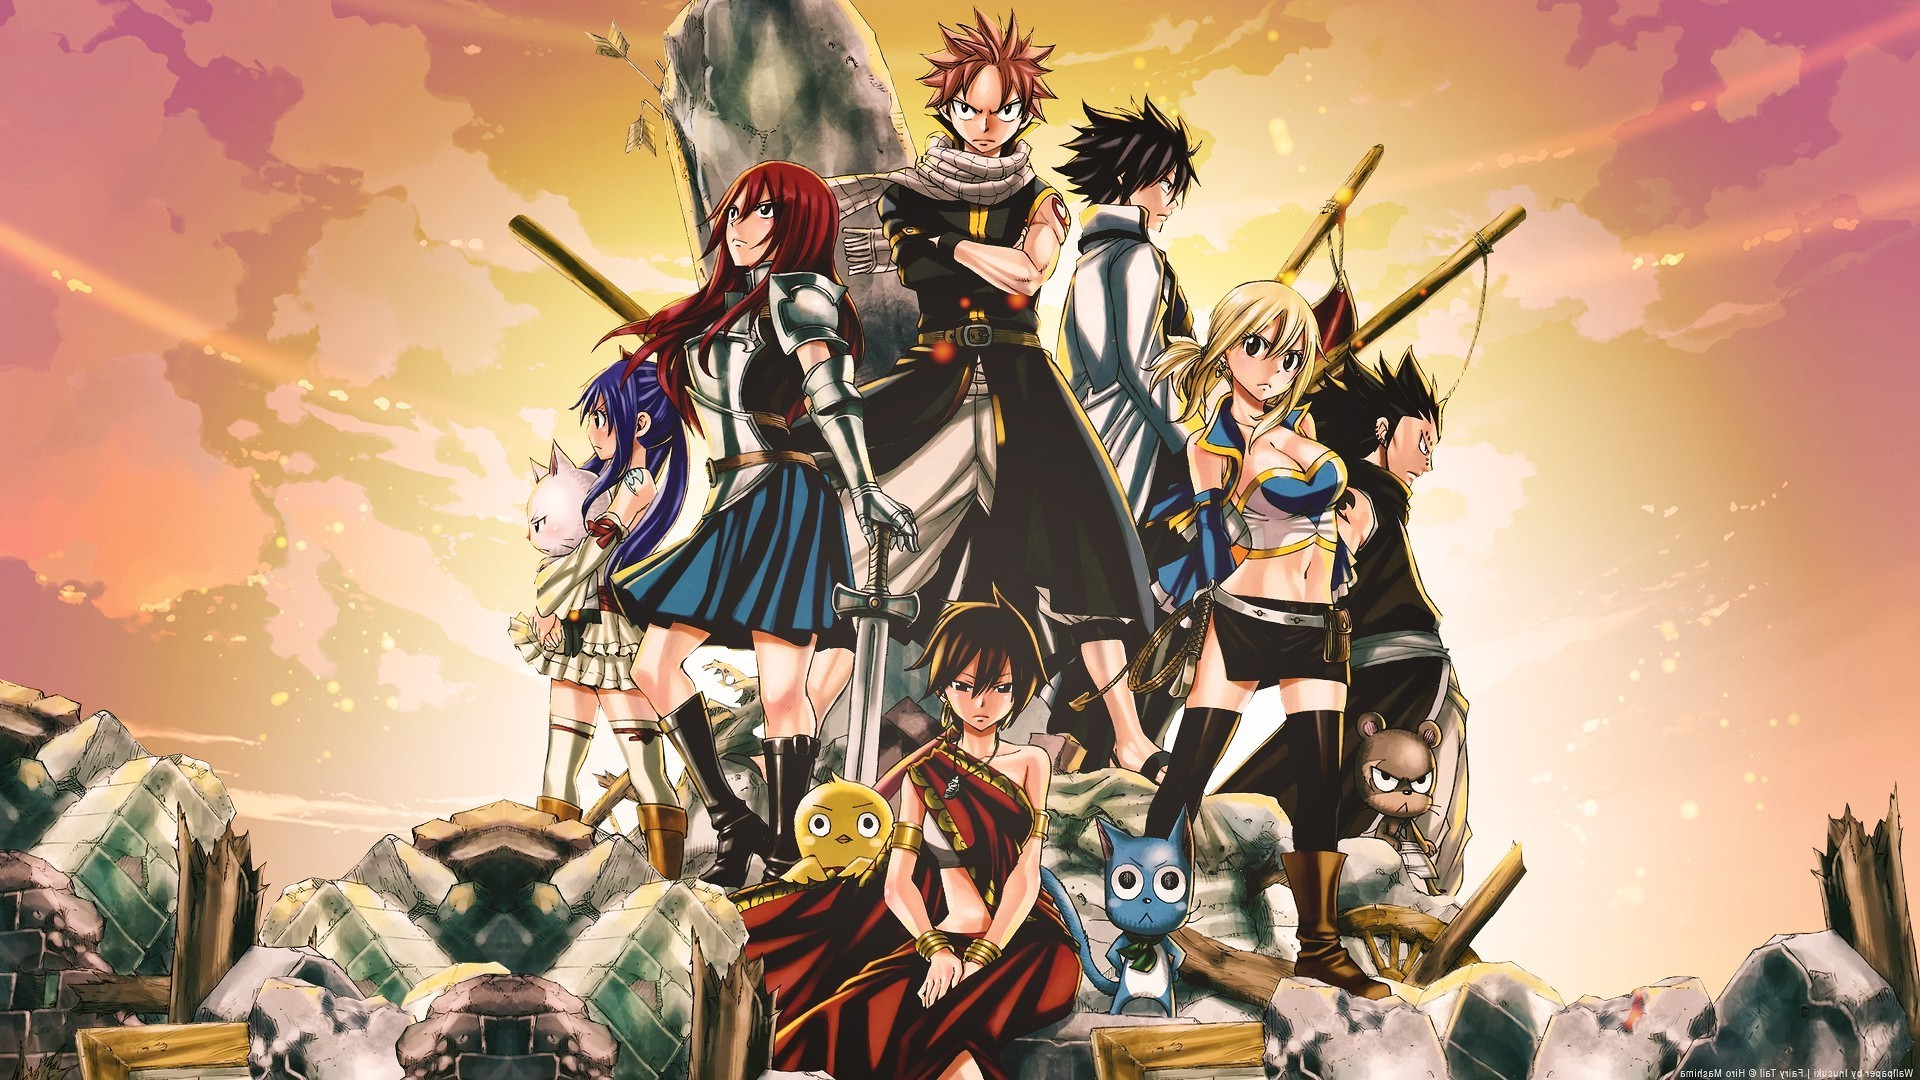 Fairy Tail Anime Wallpaper For Android   Wallpapersimages org Fairy Tale Backgrounds 62 Images